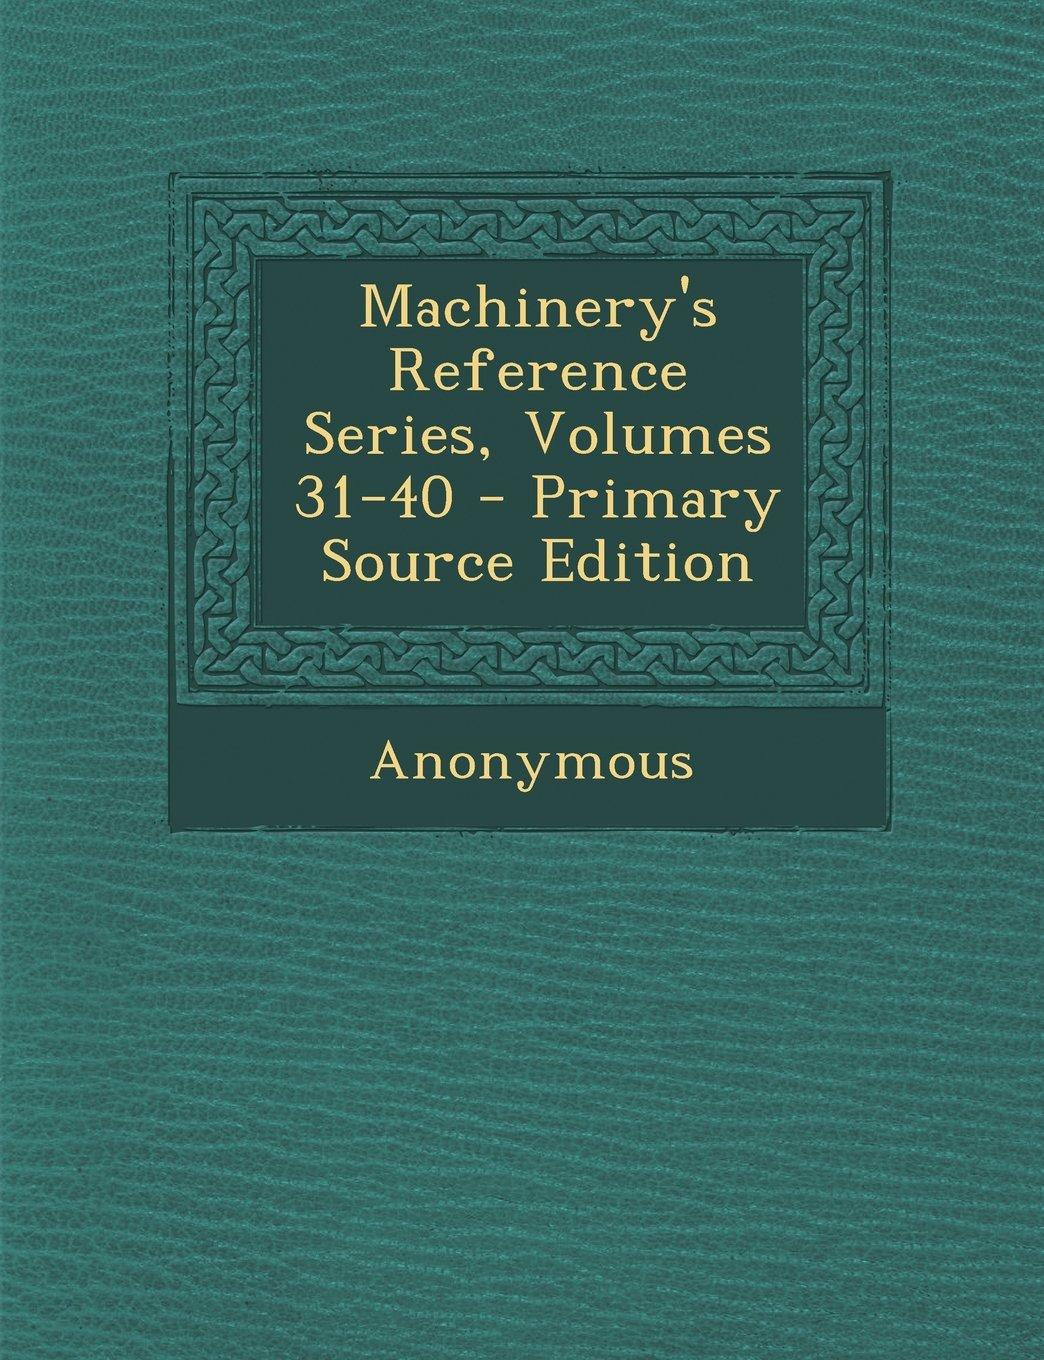 Machinery's Reference Series, Volumes 31-40 - Primary Source Edition ebook